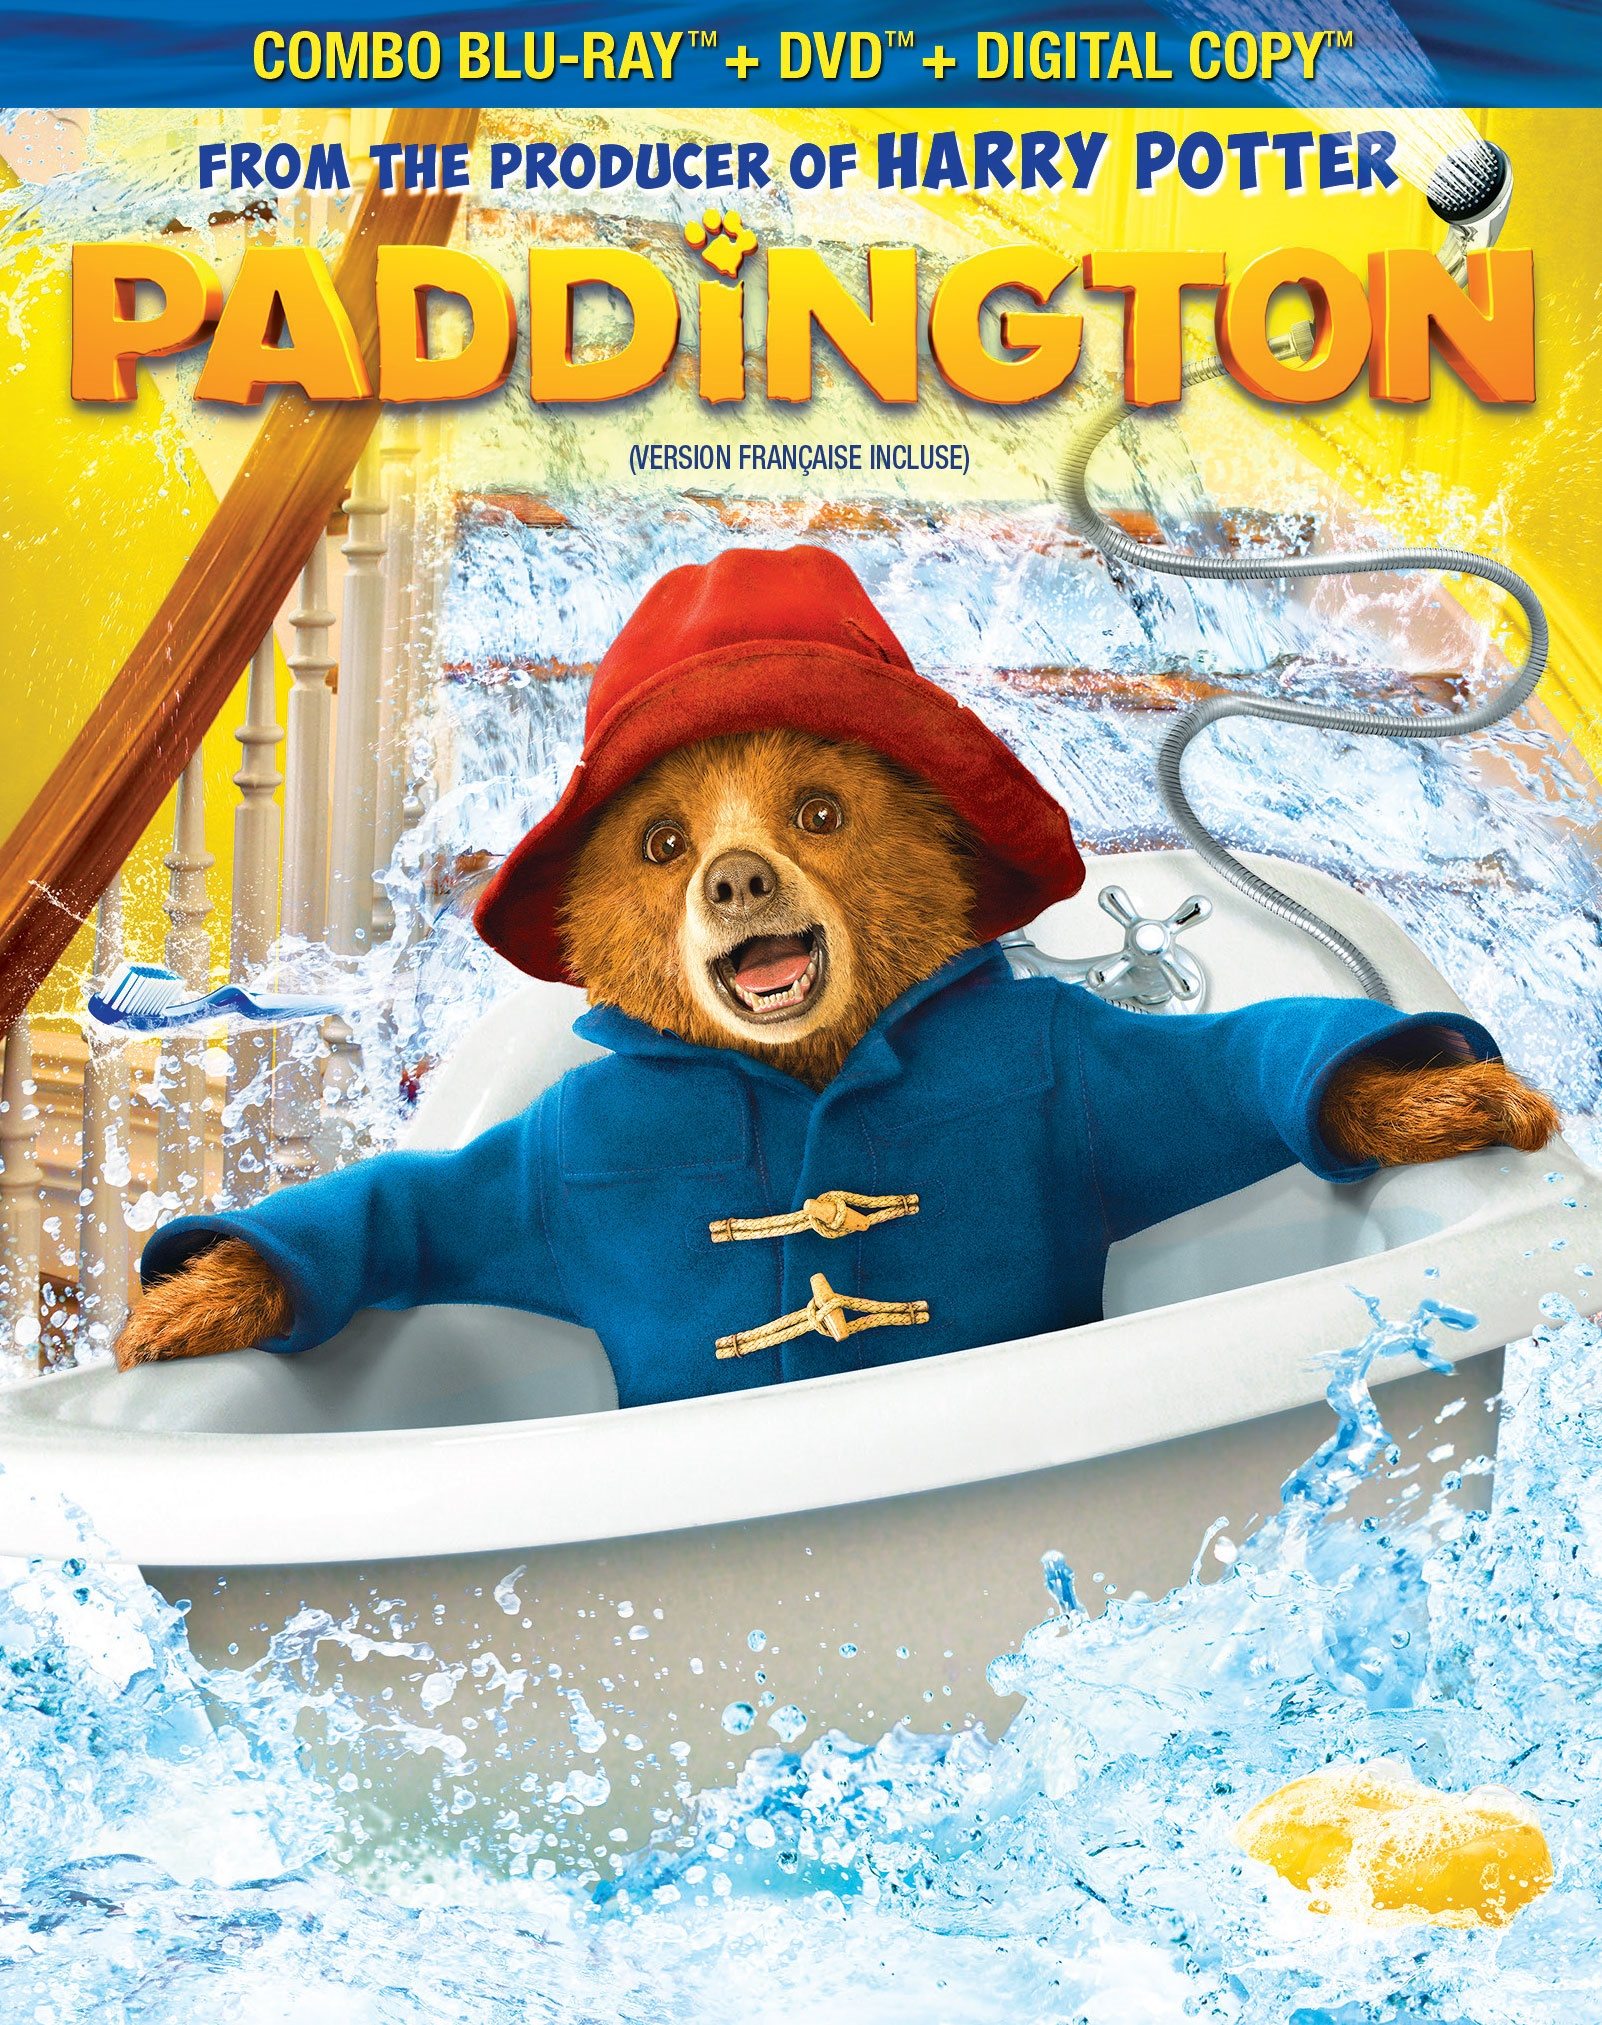 Paddington DVD And BluRay Review And Giveaway